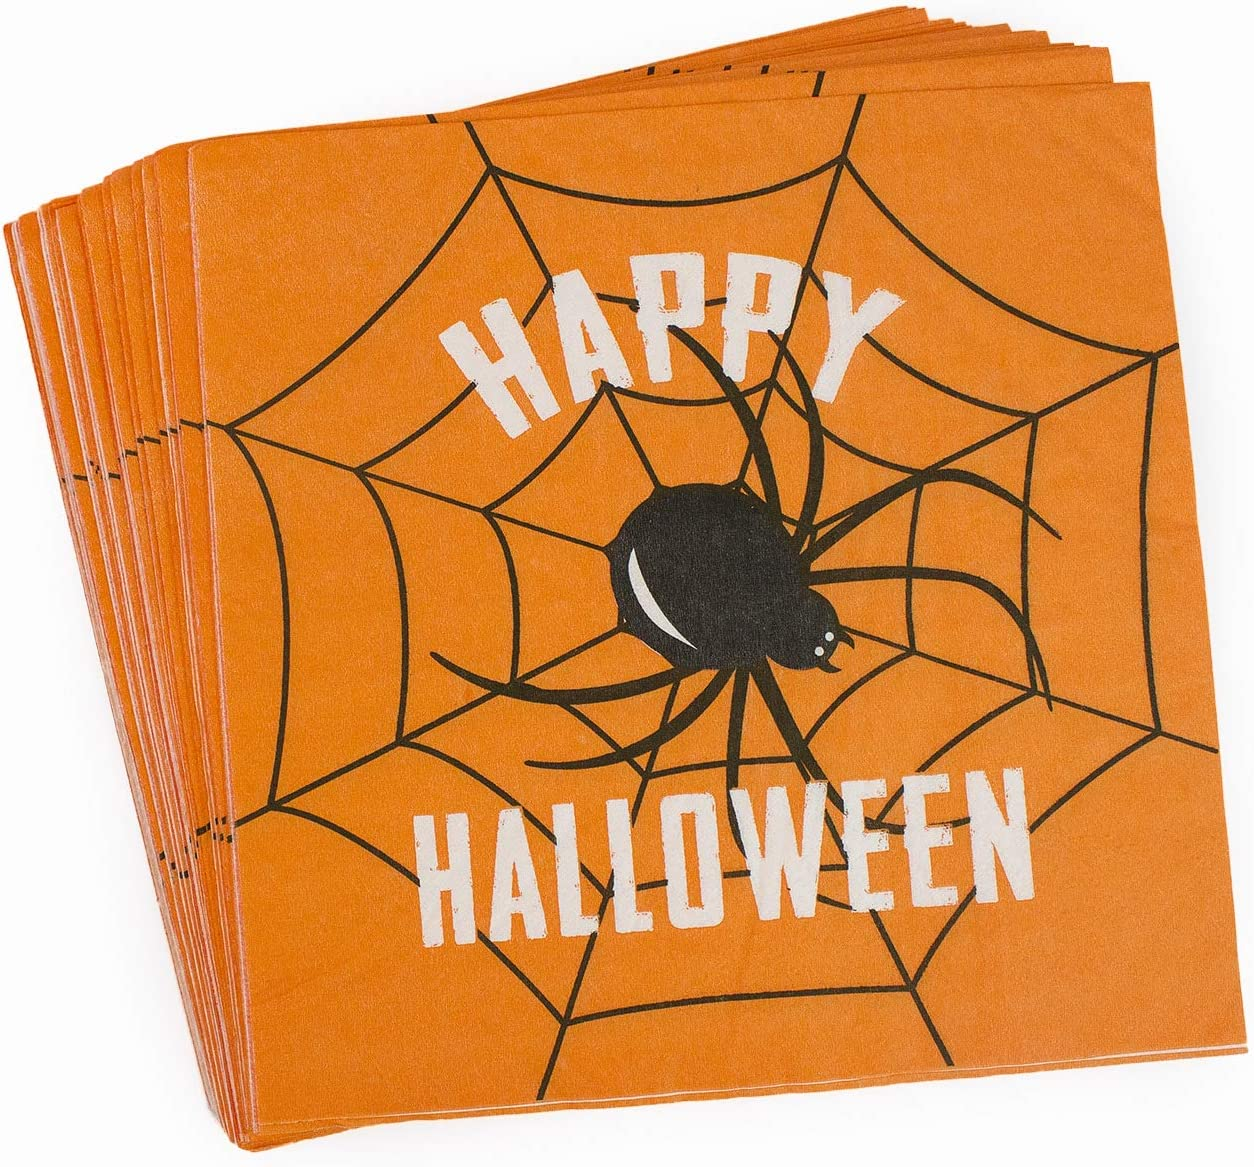 50 Ghost logo Luncheon Dinner personalized napkins halloween holiday specail event